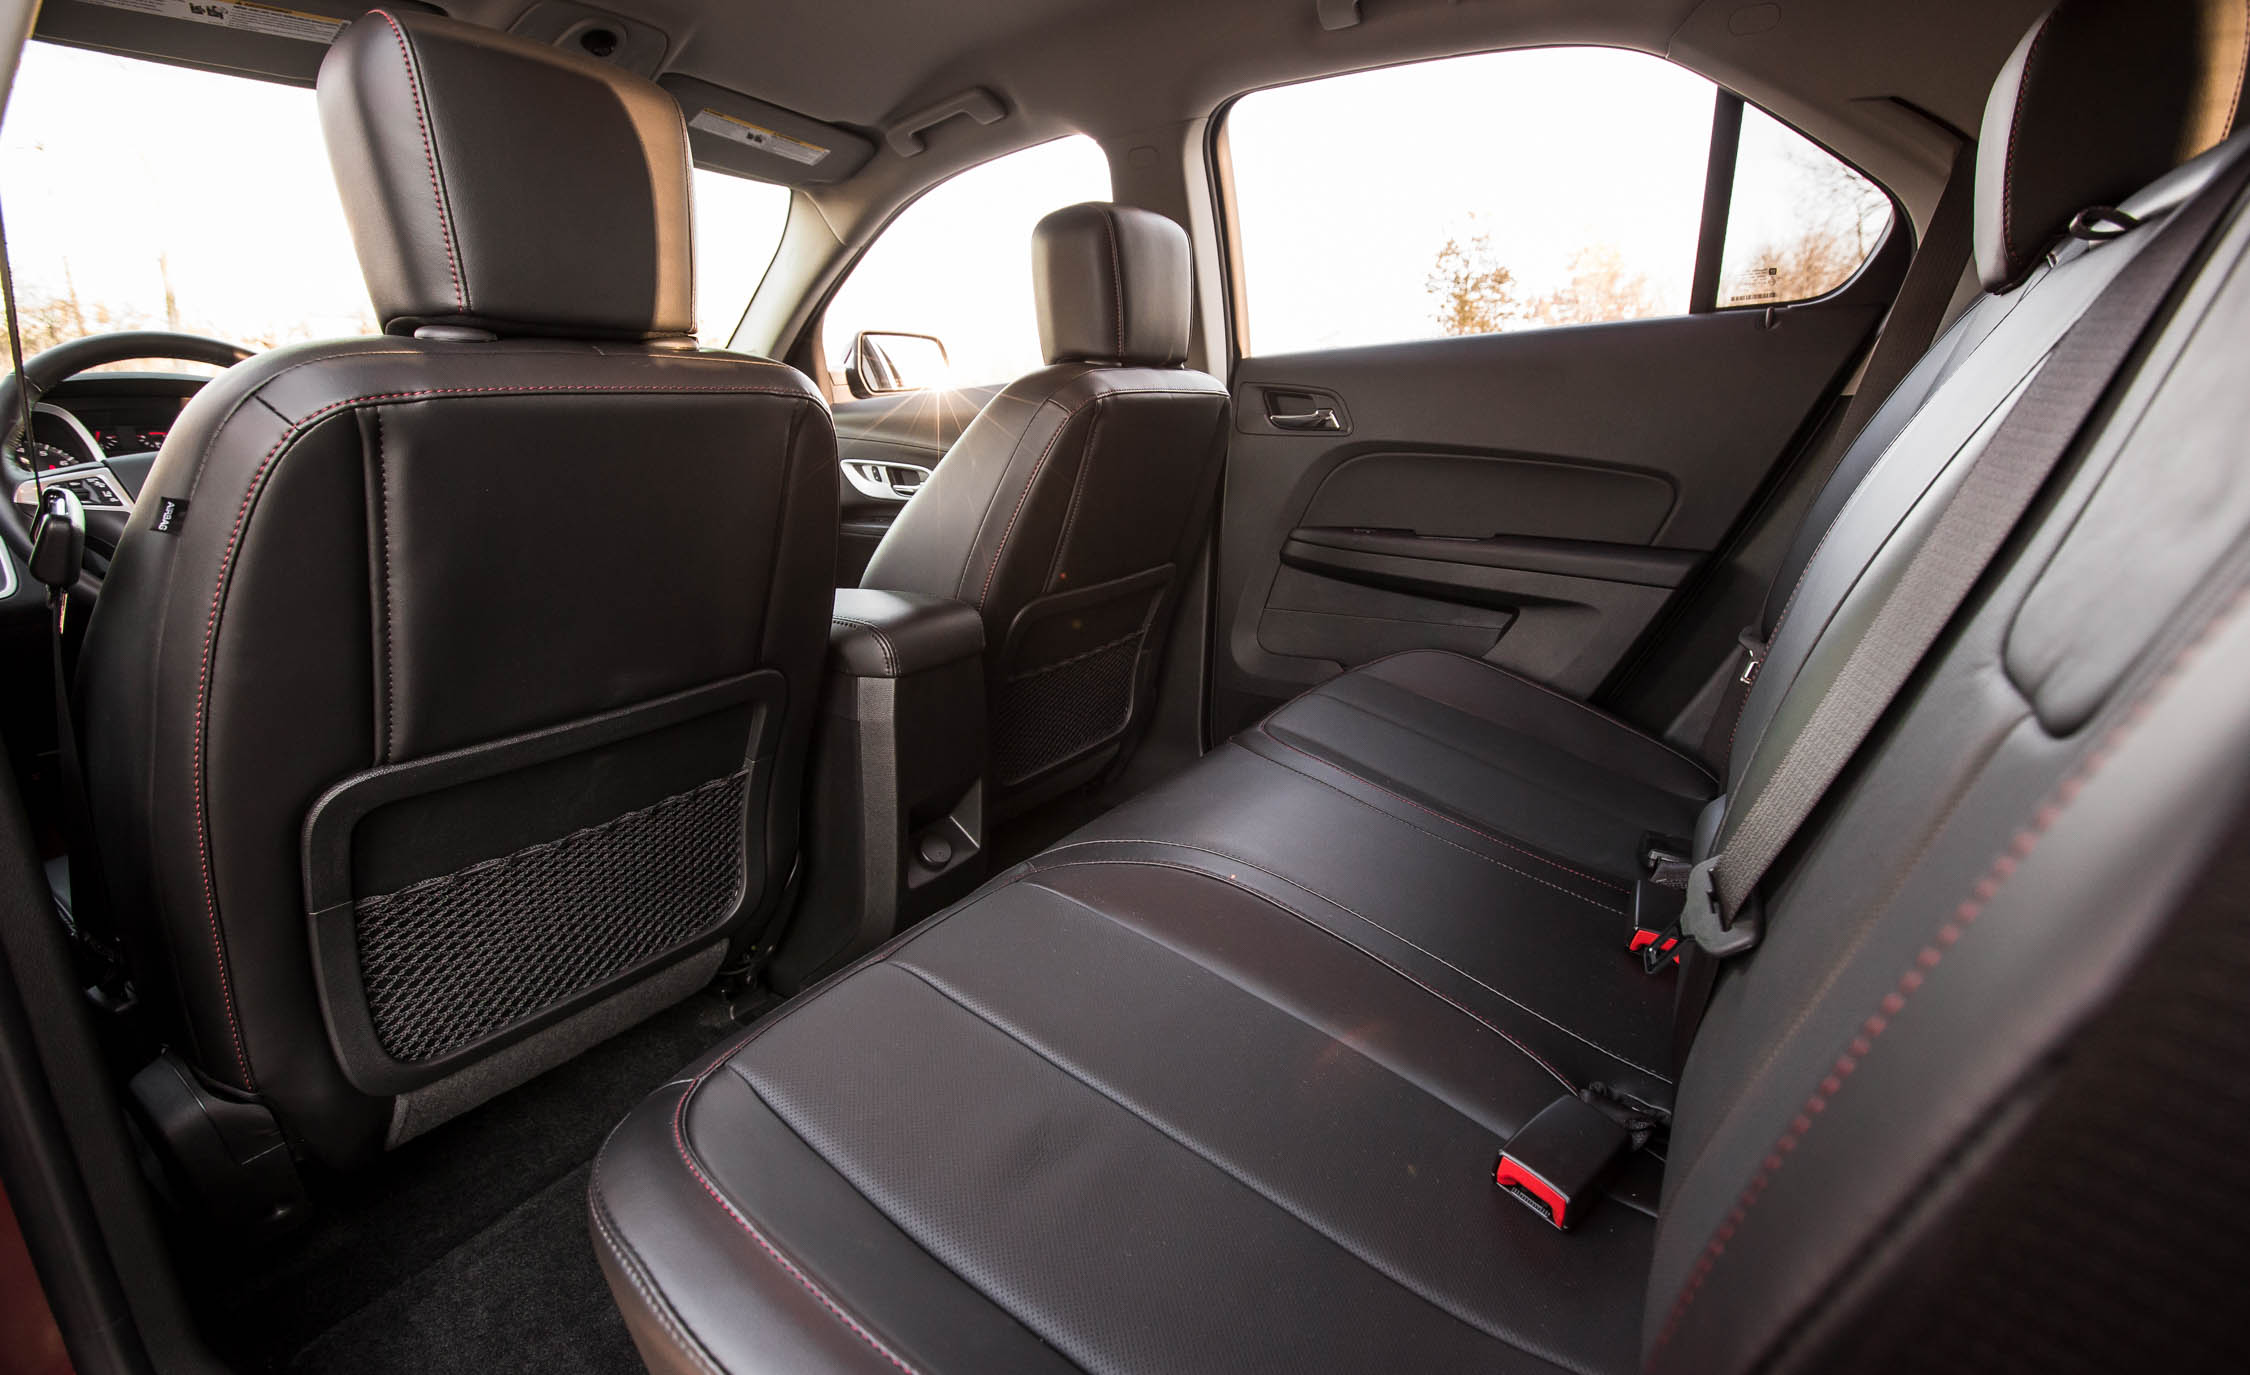 2016 Chevrolet Equinox LTZ Interior Rear